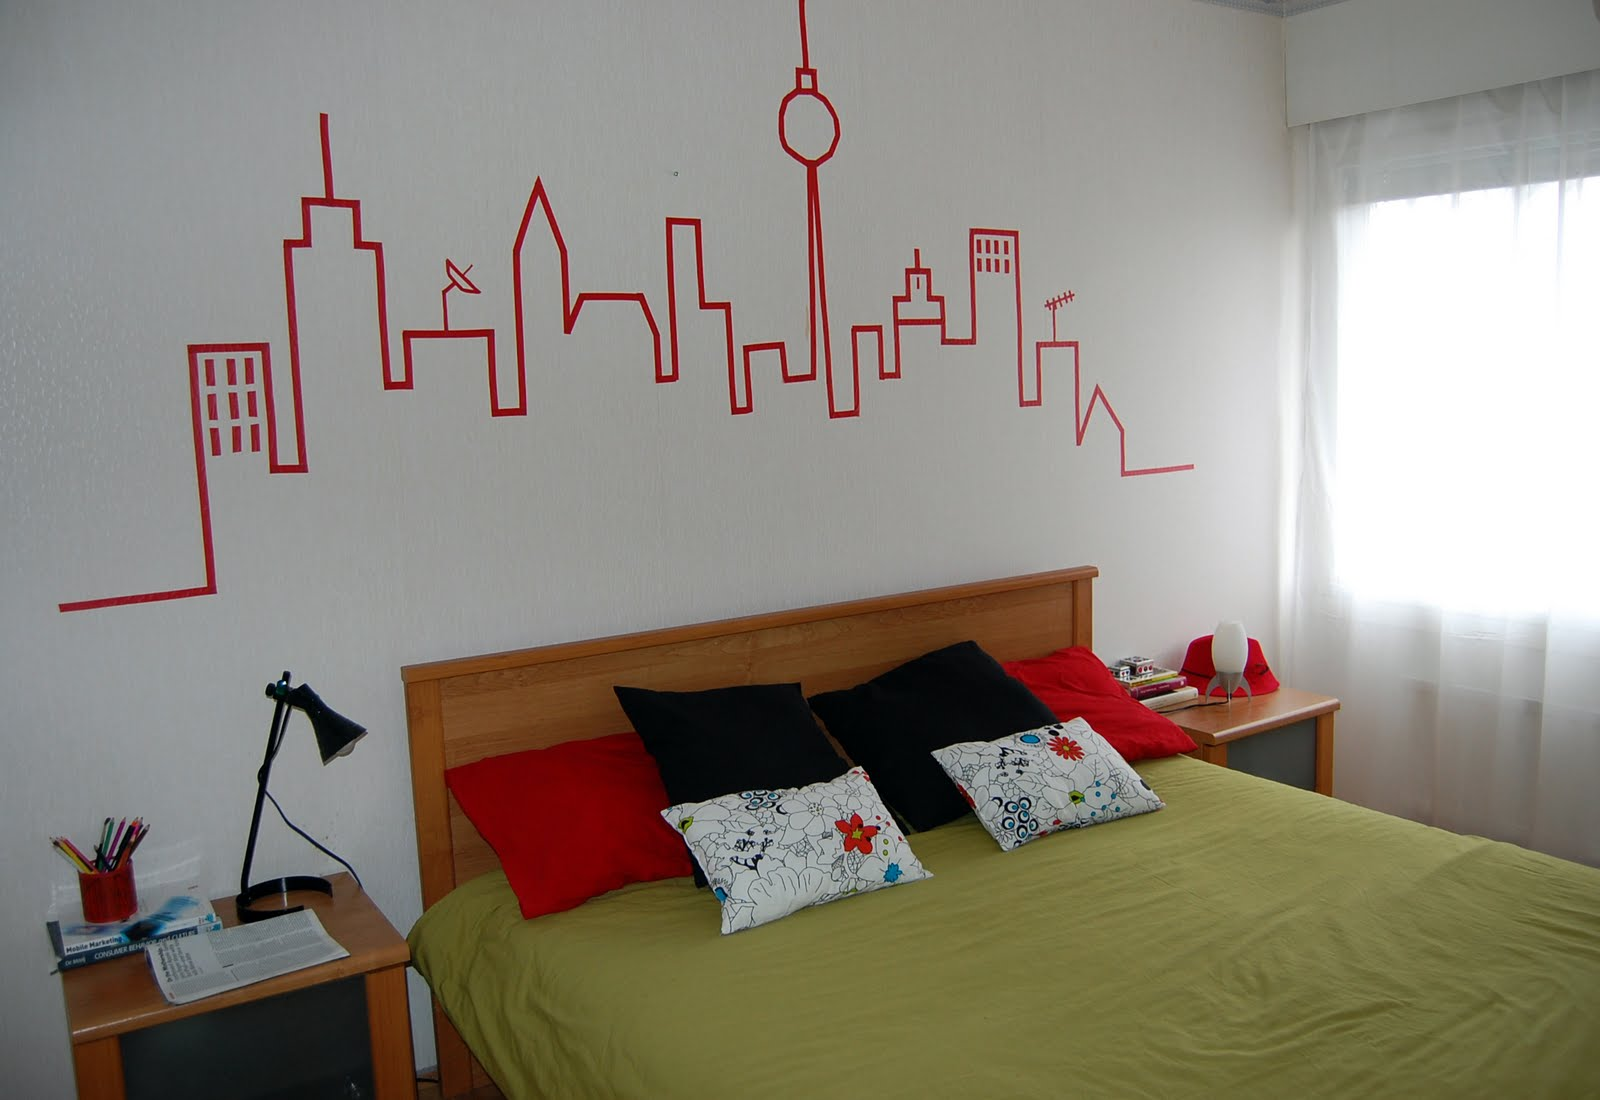 Naifandtastic decoraci n craft hecho a mano - Como decorar una pared de habitacion ...